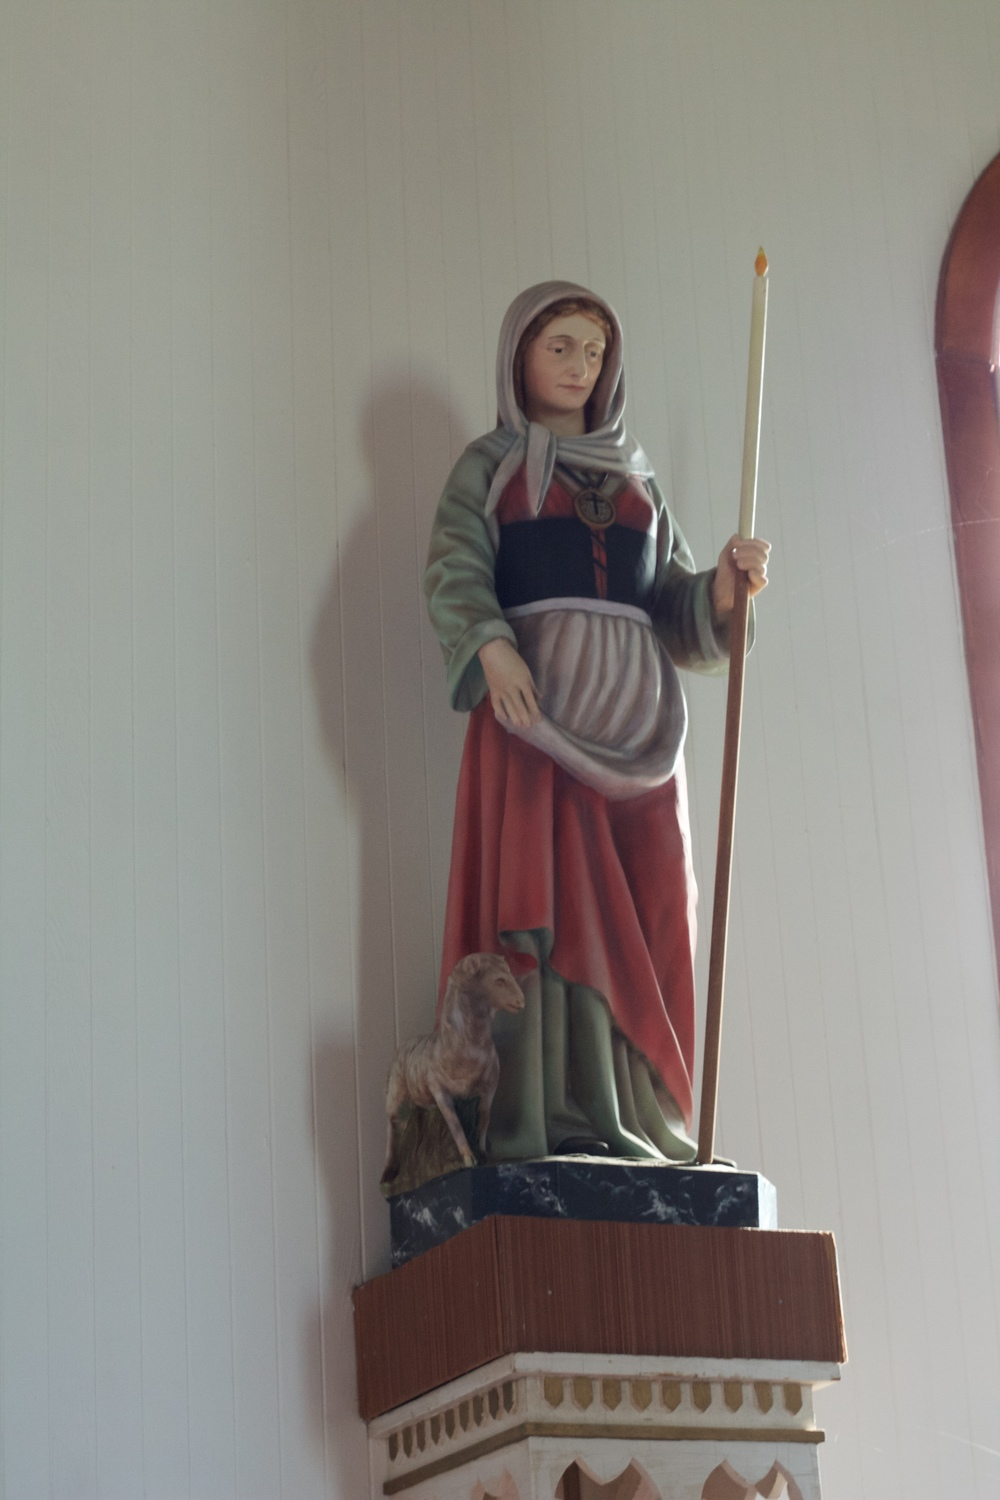 A statue of Ste Geneviève inside the church.